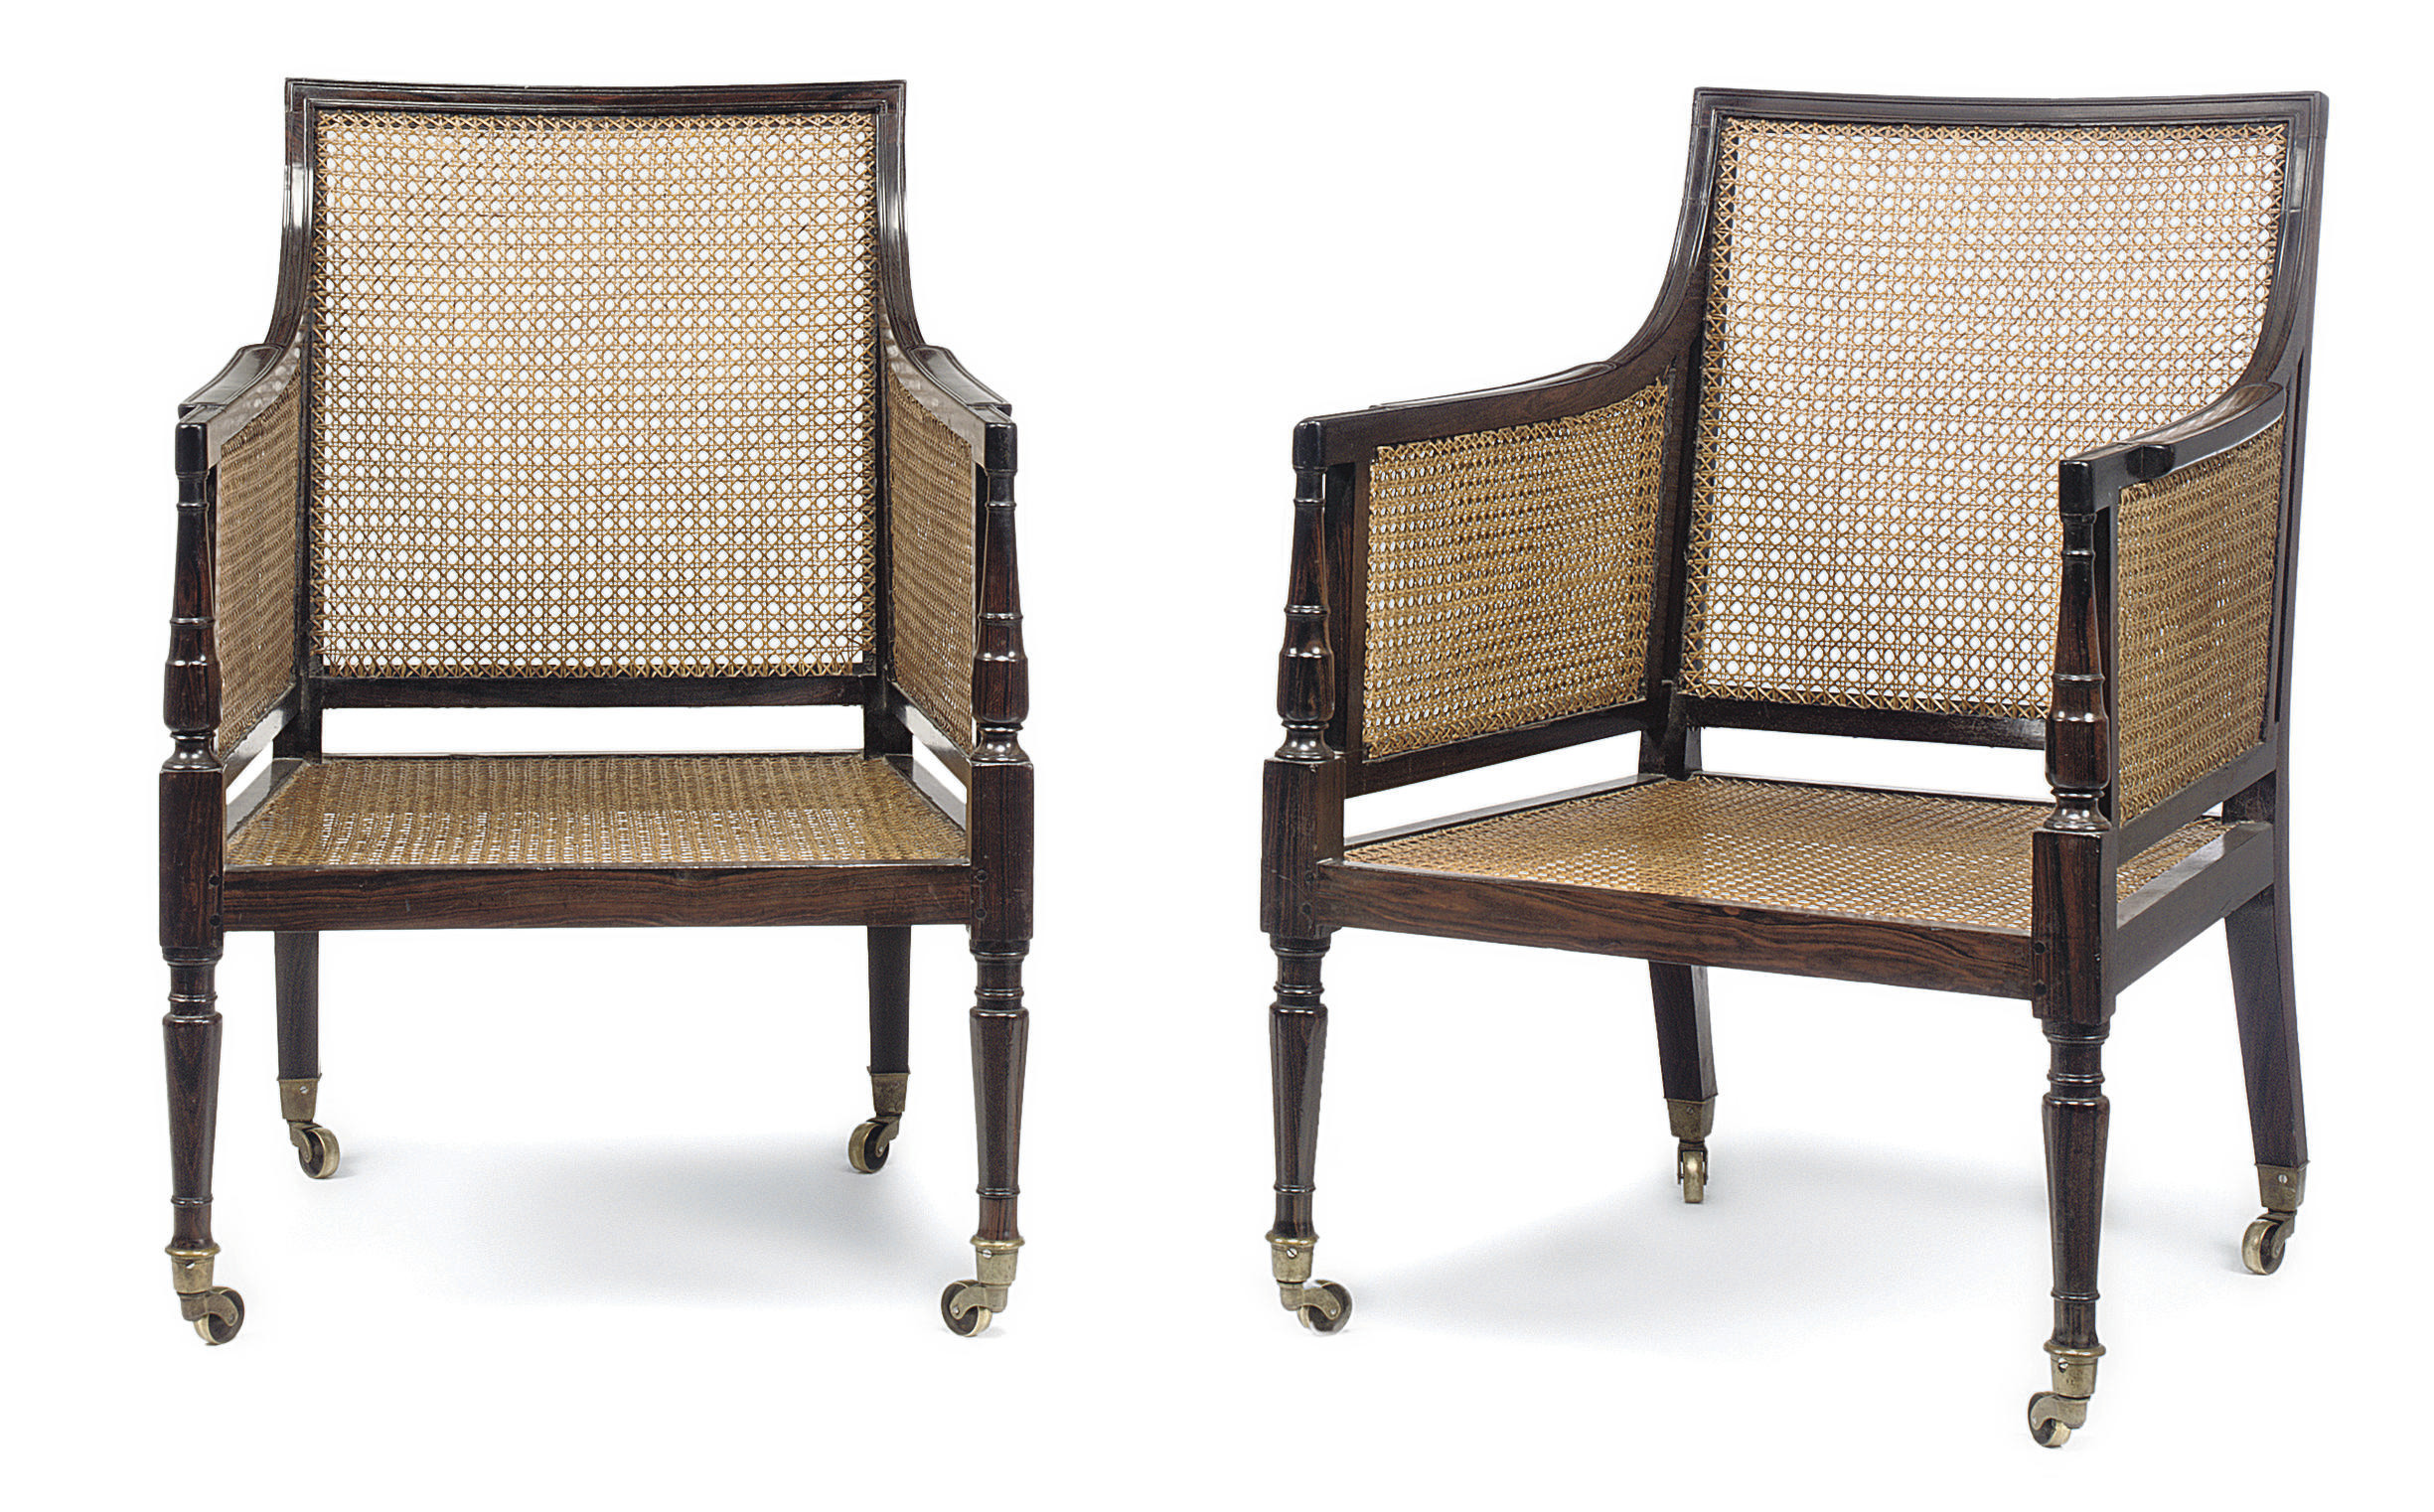 A PAIR OF ANGLO-INDIAN EBONY A